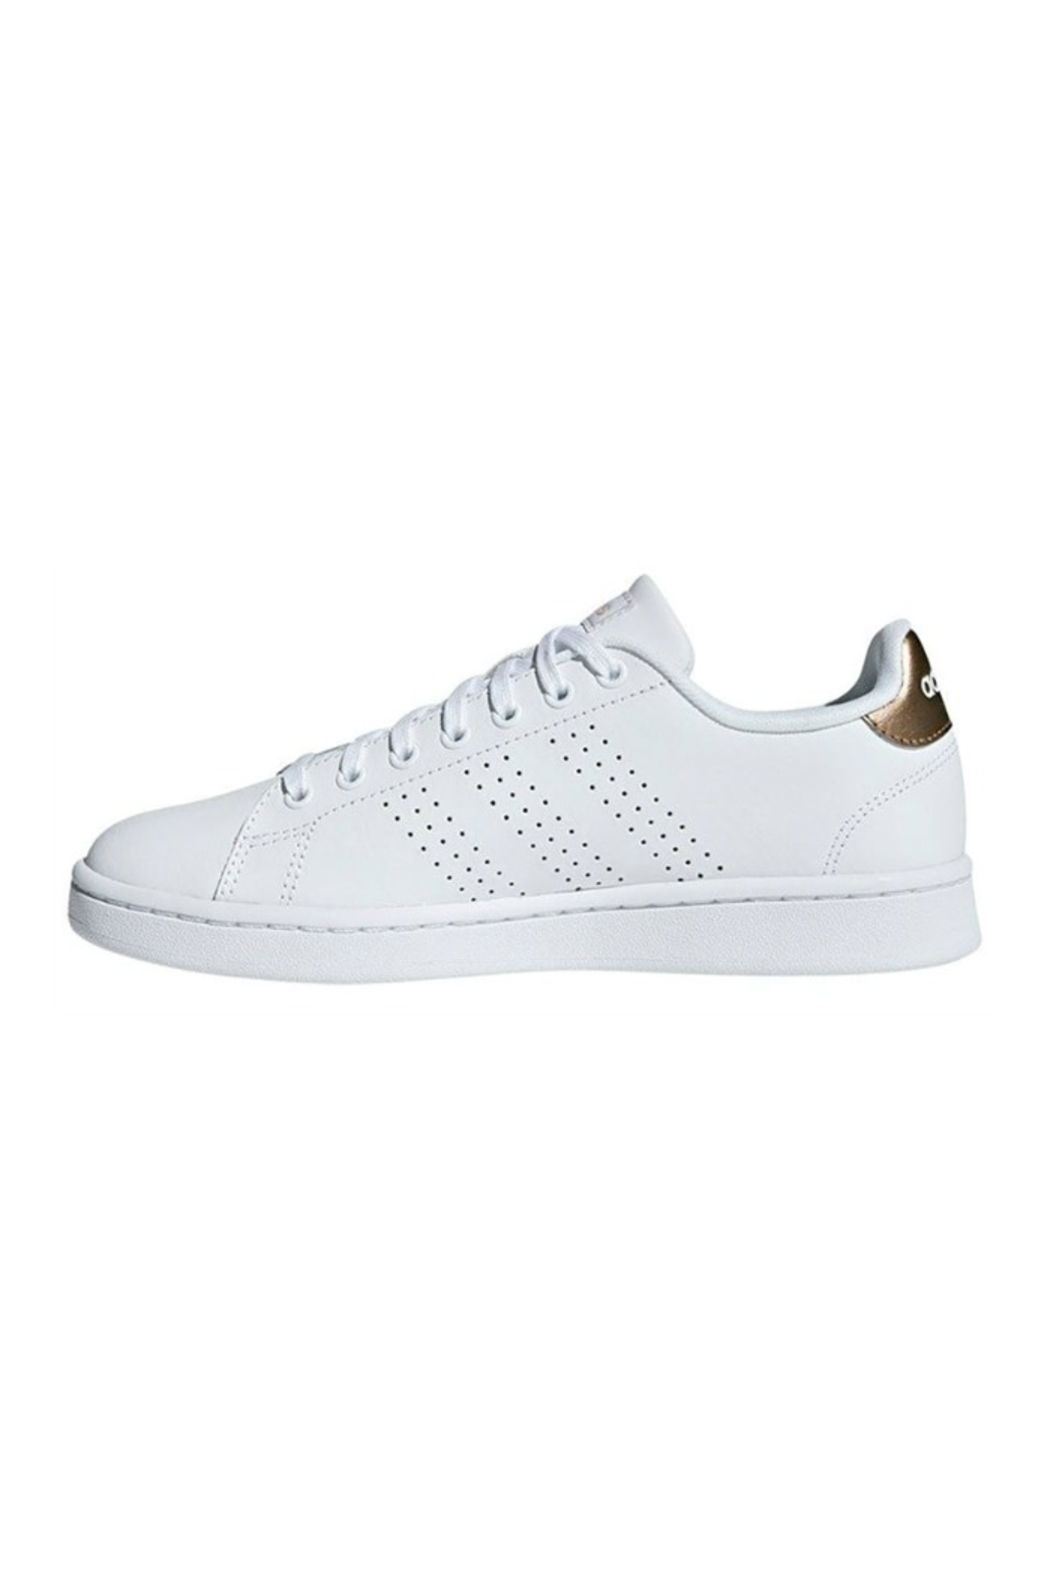 adidas Adidas Women's Advantage in Cloud White/Copper Metallic - Side Cropped Image